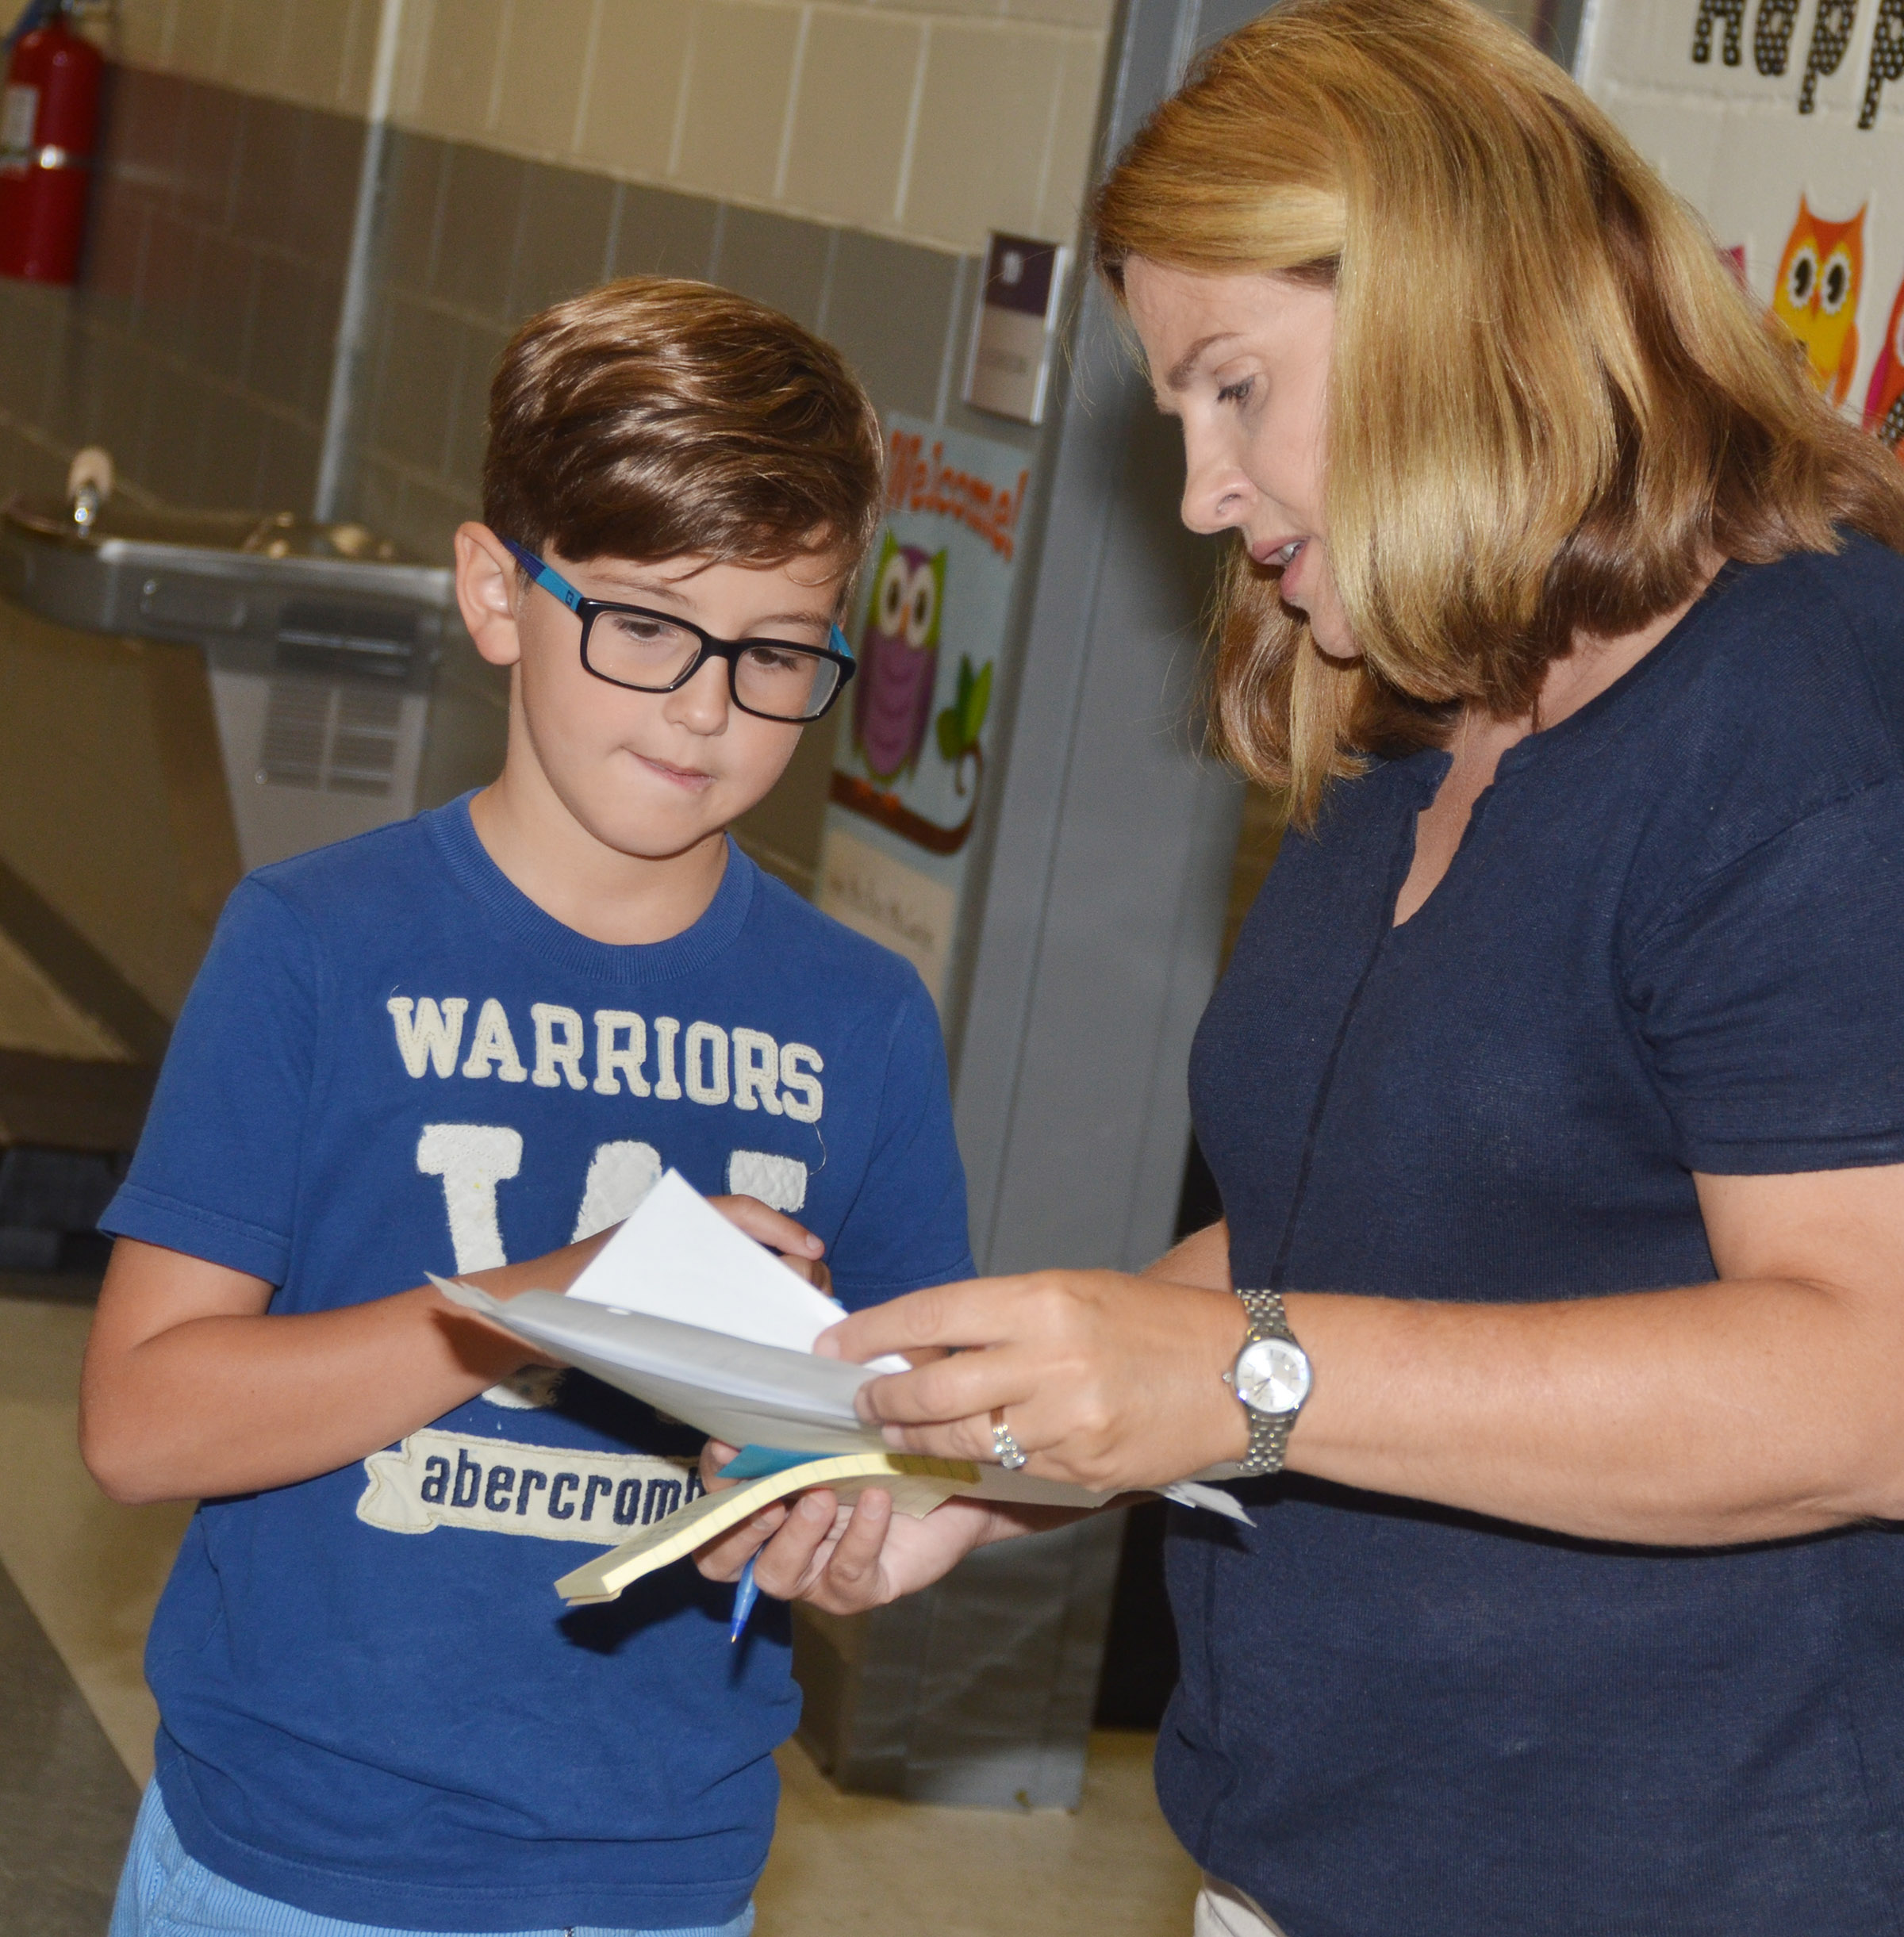 CES Guidance Counselor Sonya Orberson asks third-grader Tye Rhodes to help her collect some paperwork.